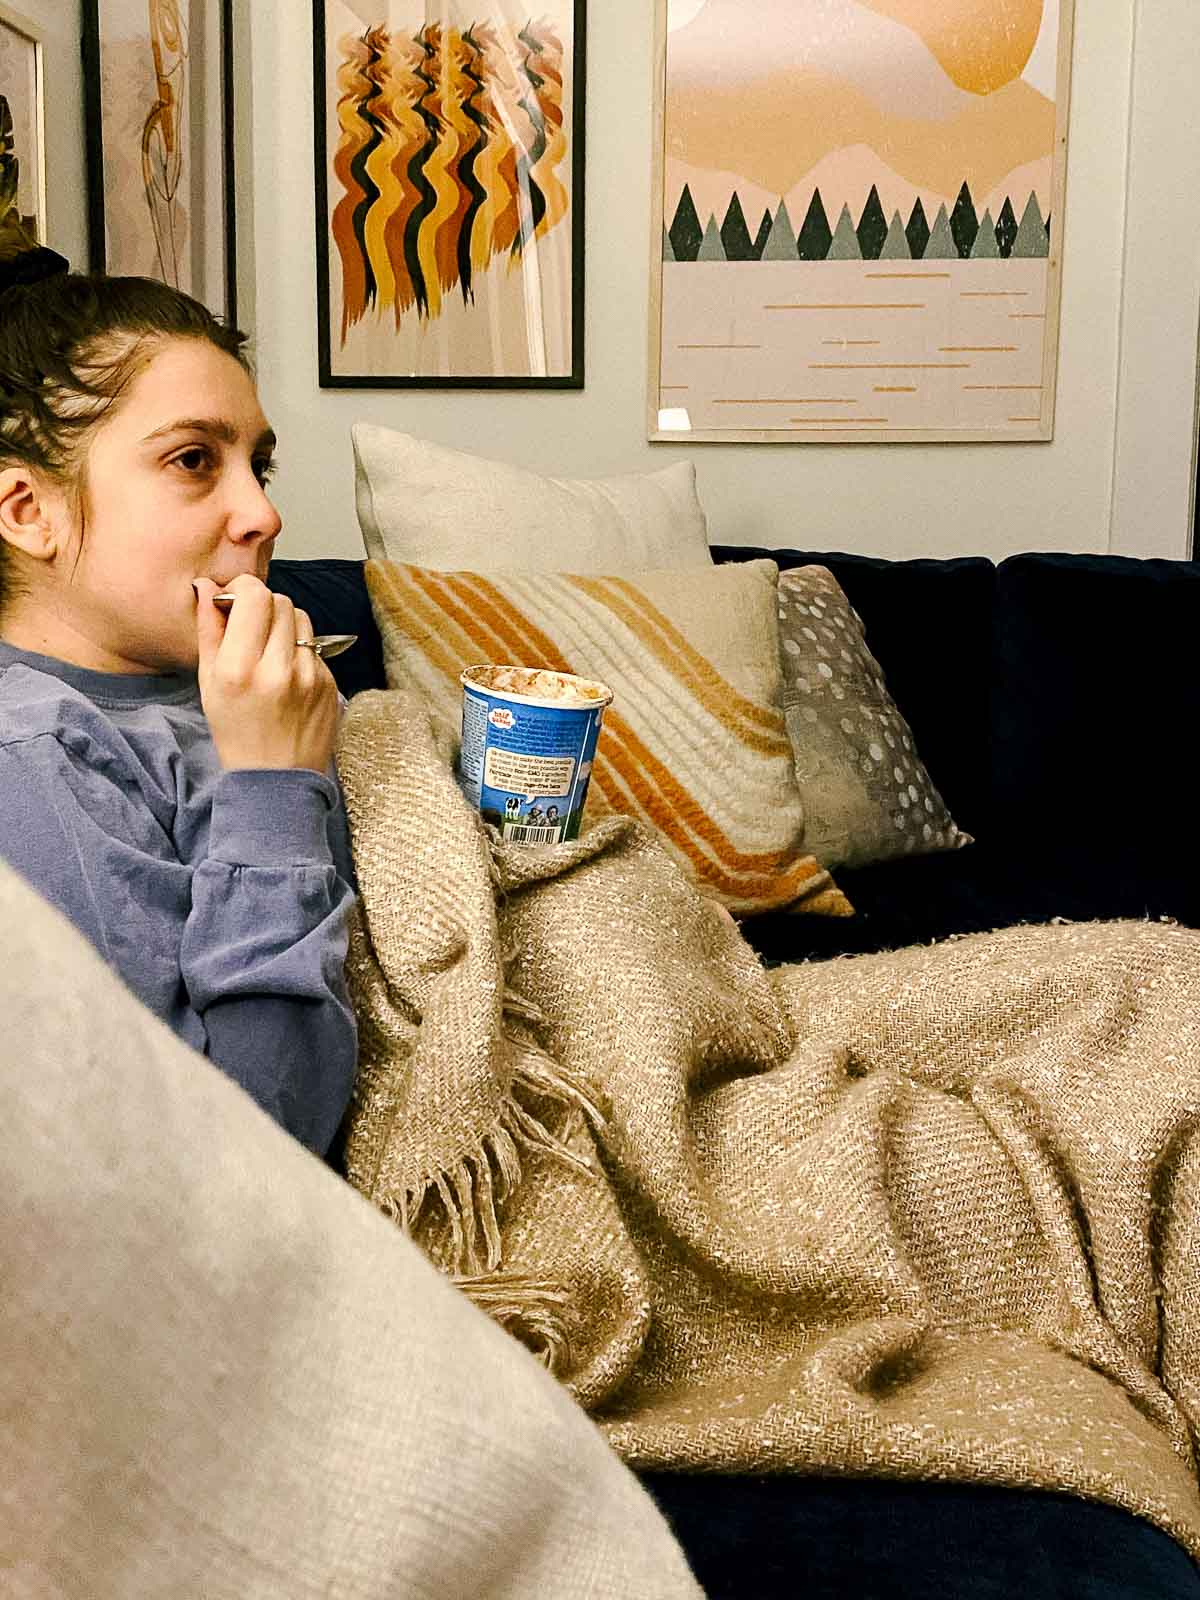 kara lydon second trimester pregnancy pregnant journey ice cream ben and jerry's resting on pregnant belly